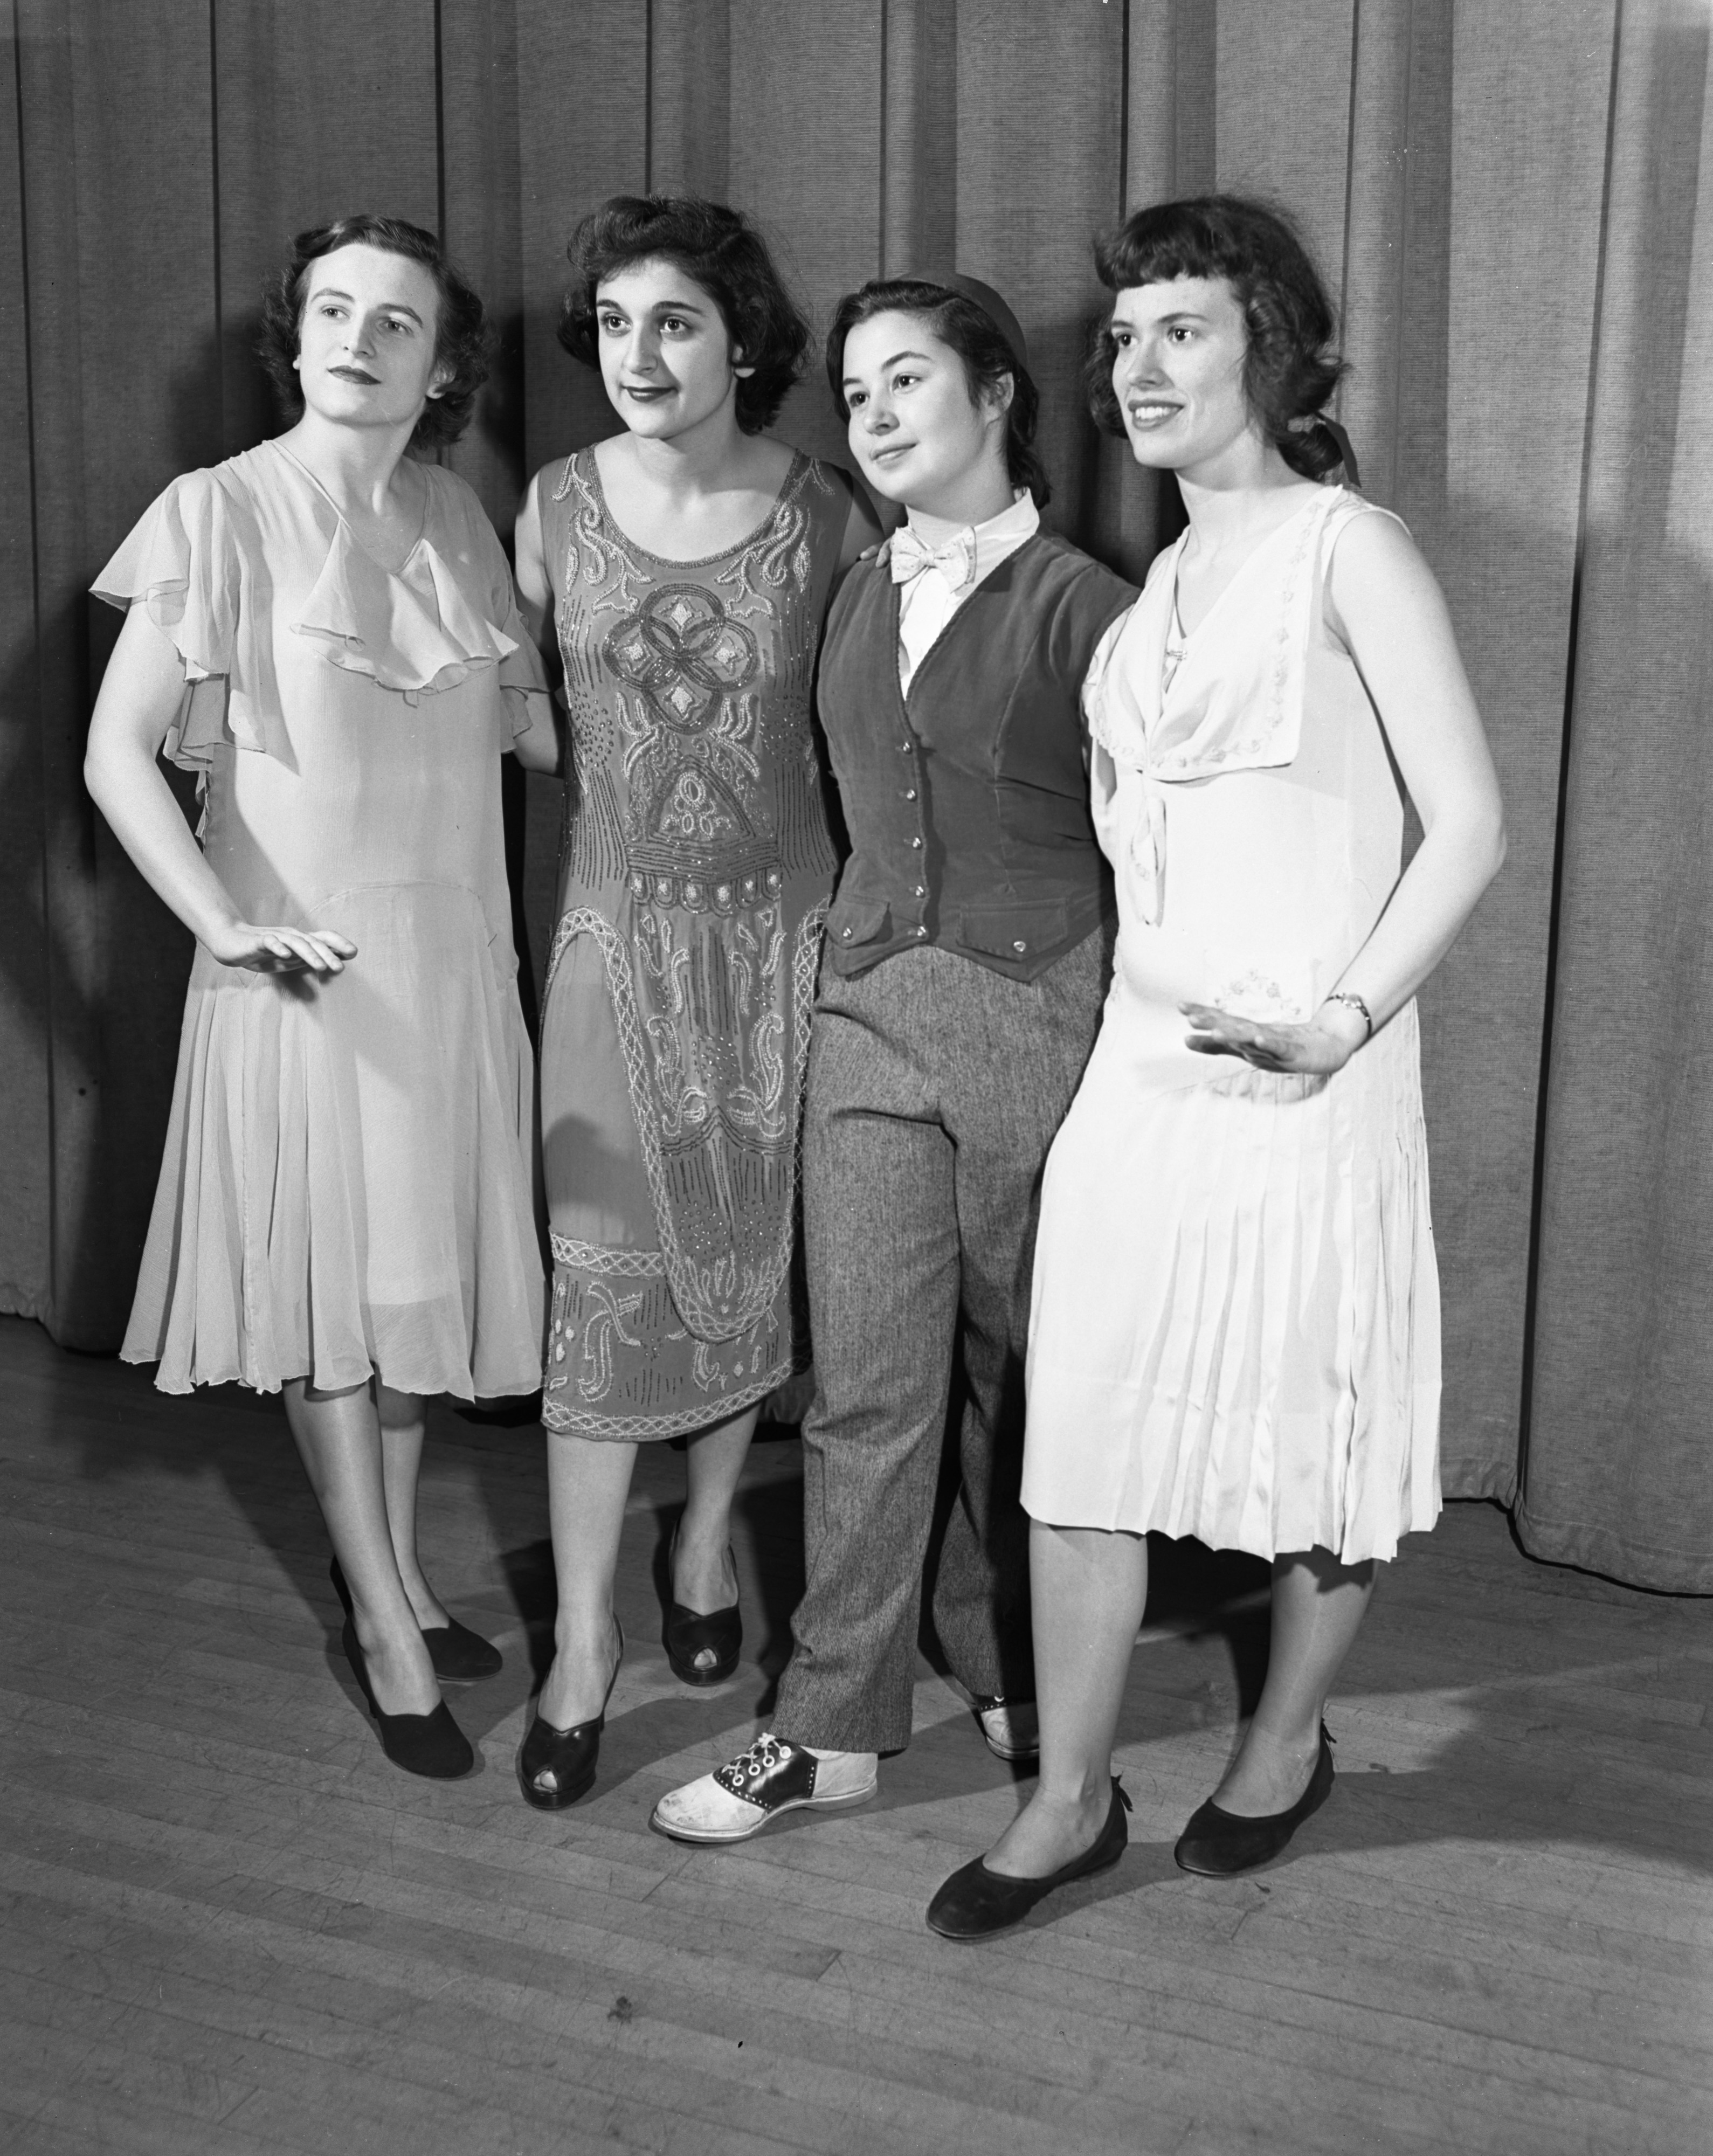 Ann Arbor High School Girls Costume Dance, April 1950 image